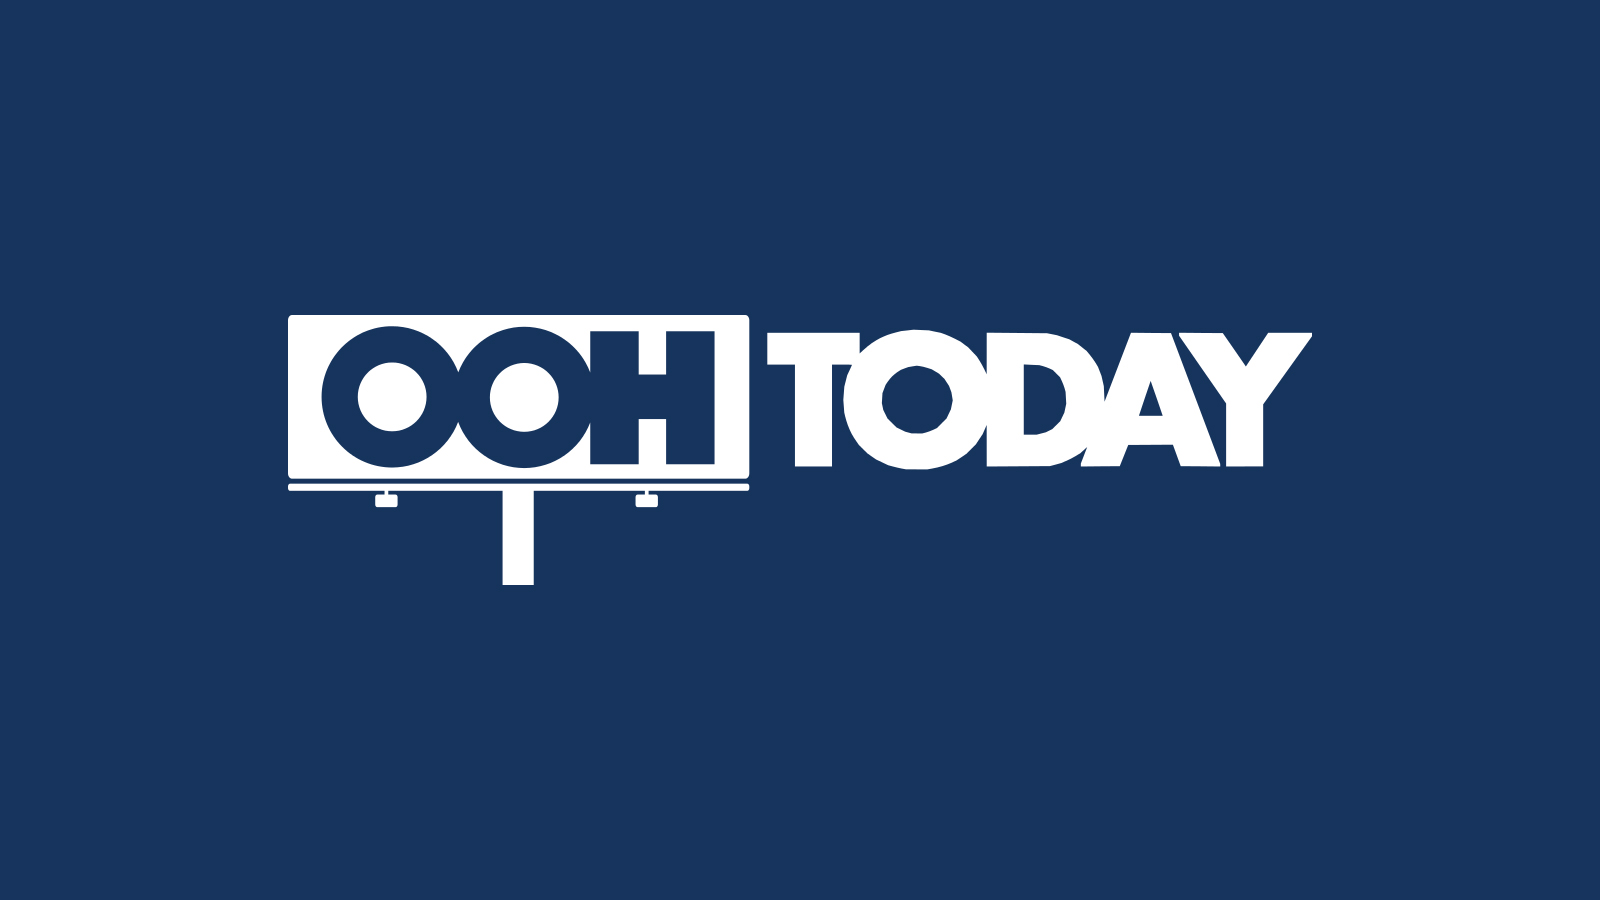 ooh-today-logo